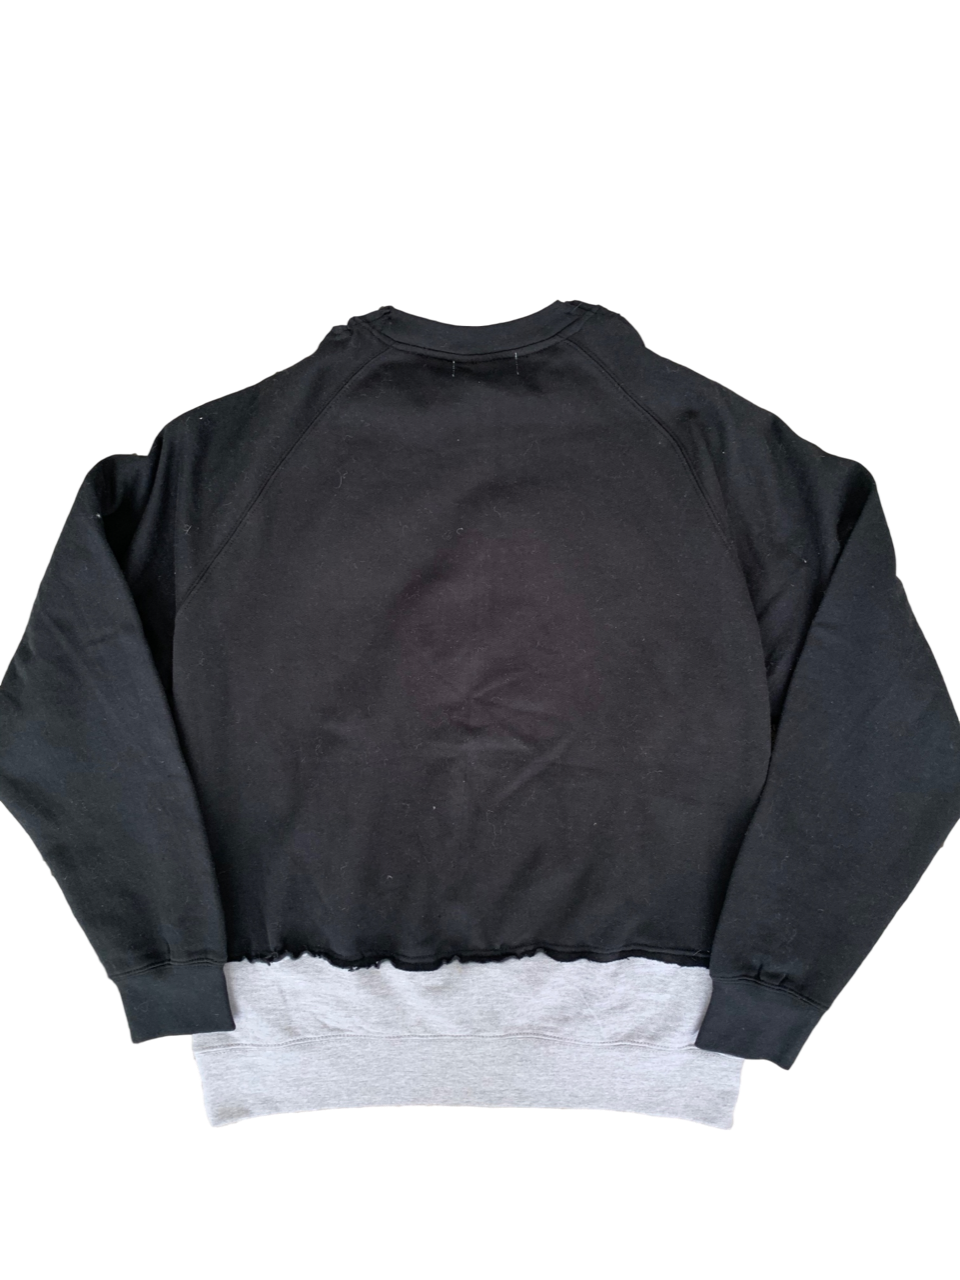 Distorted Unisex Cotton Sweater